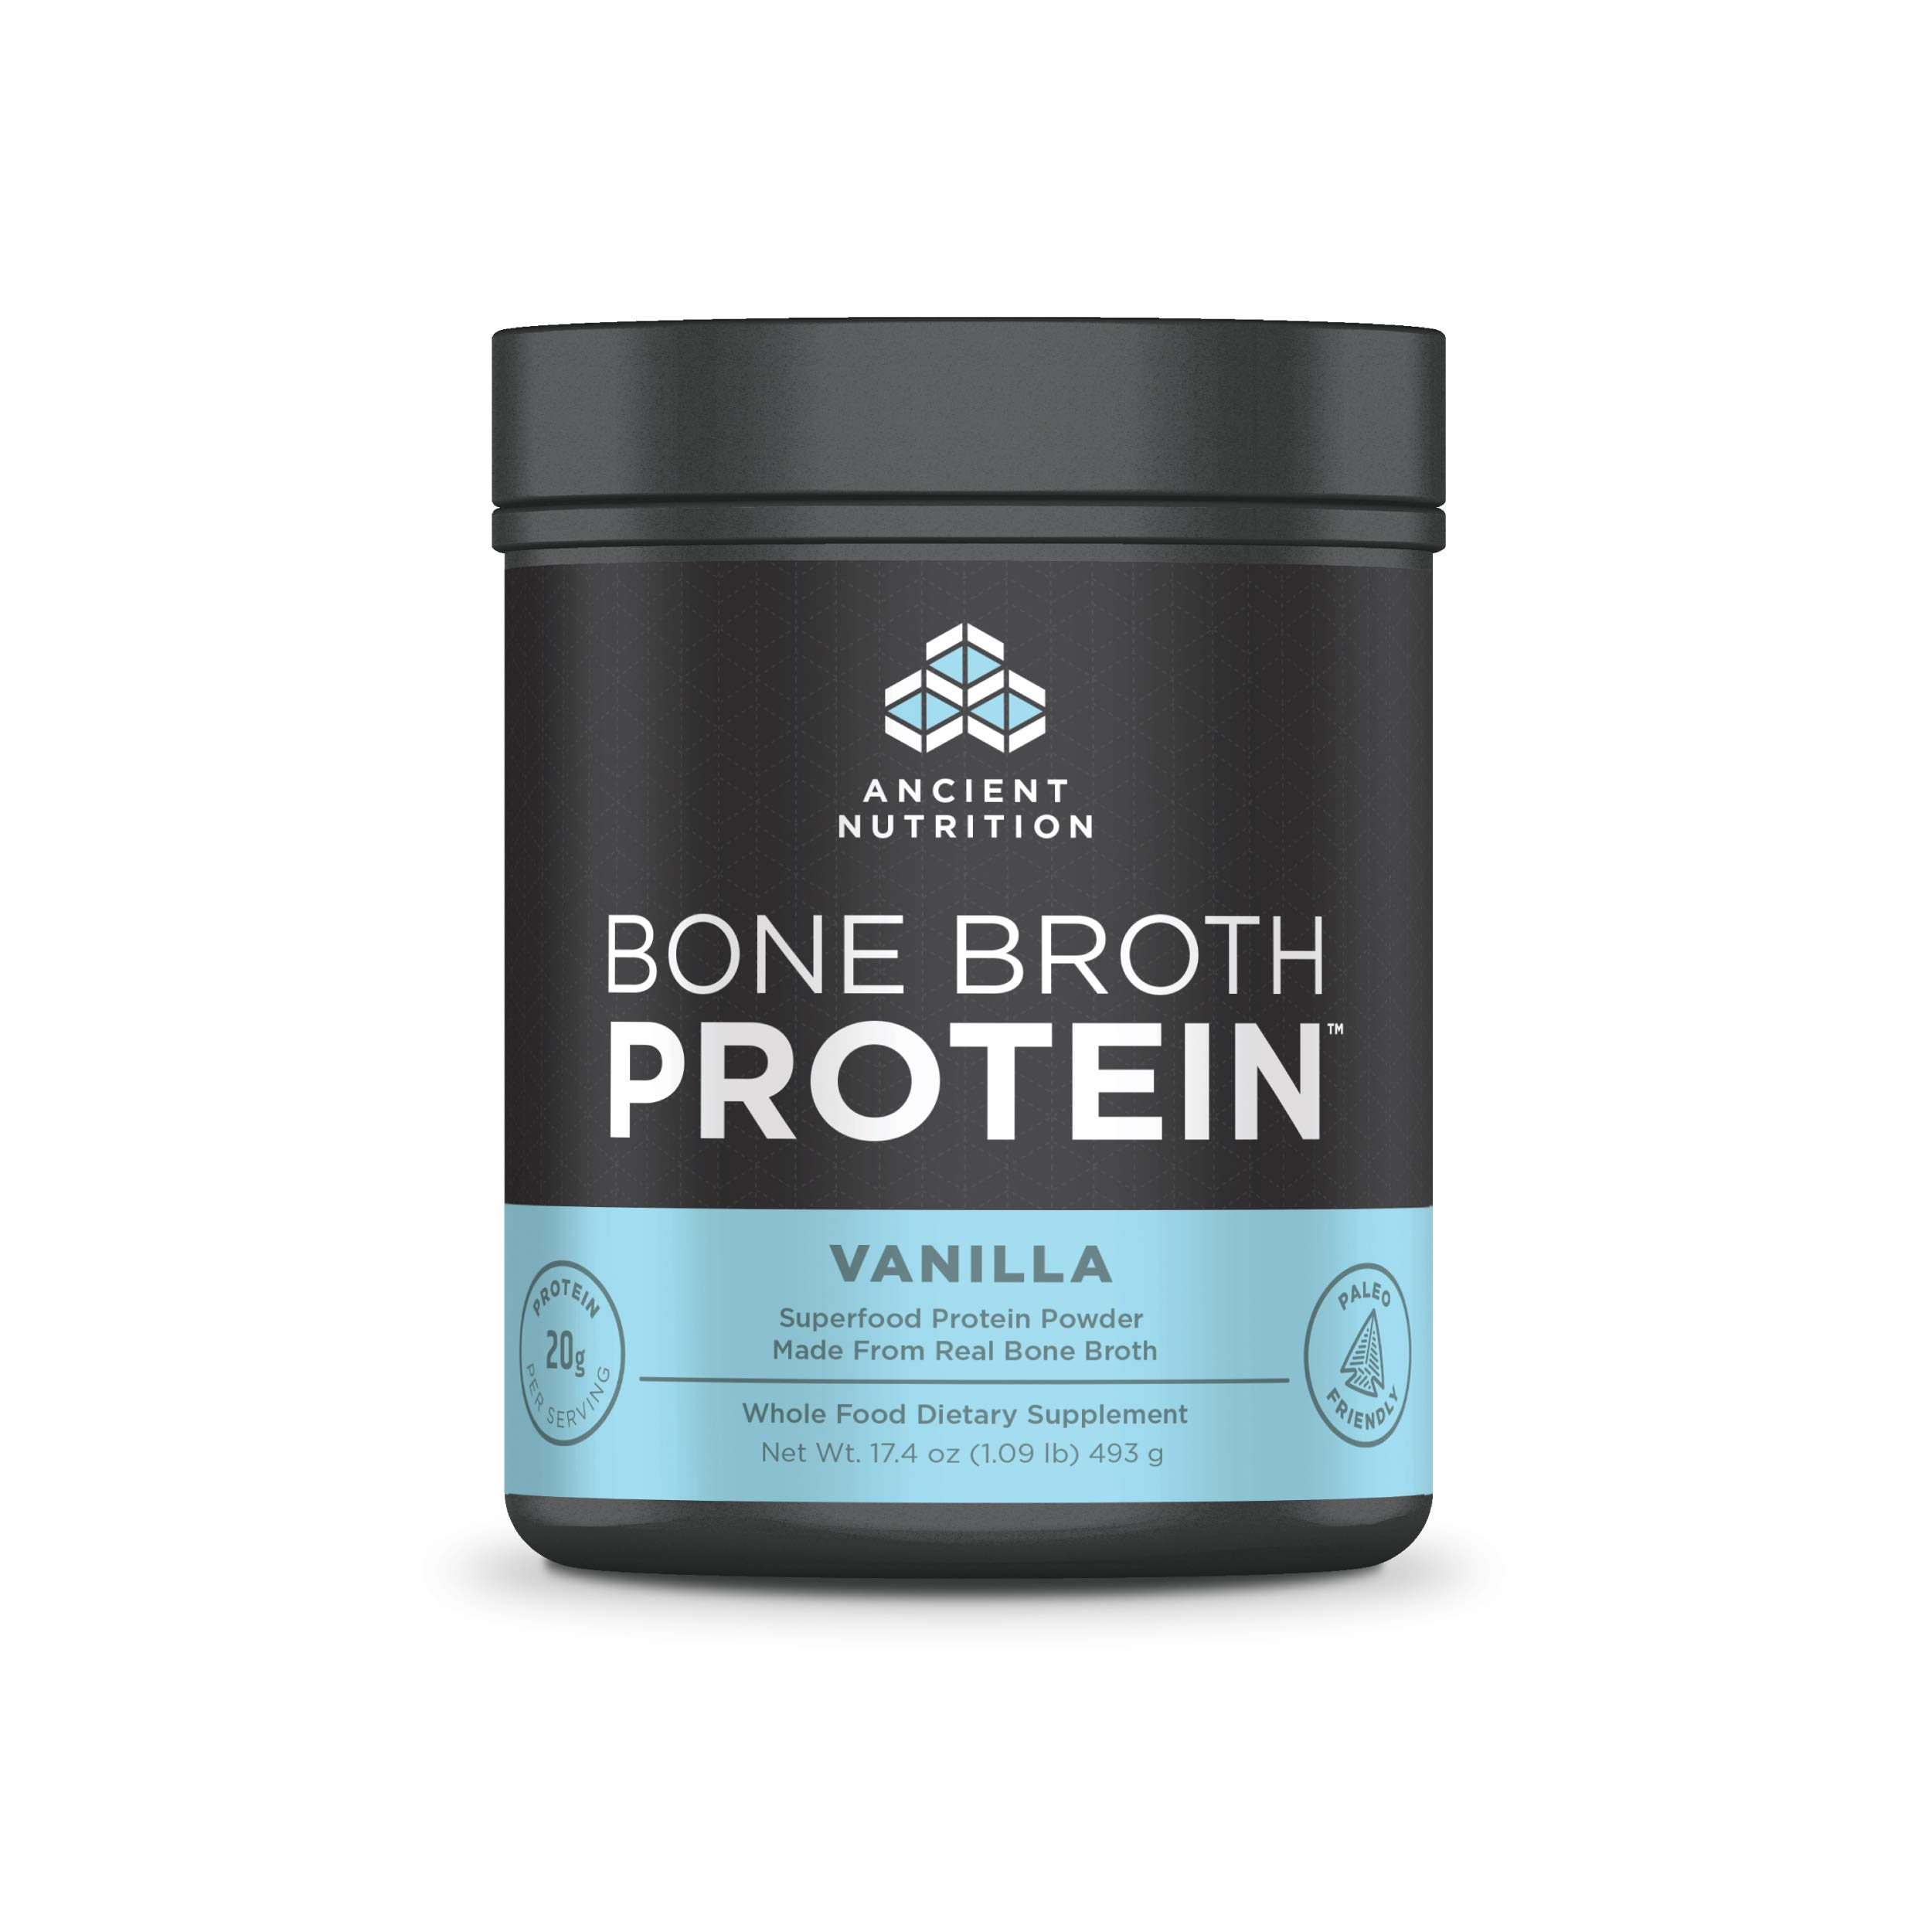 Ancient Nutrition Bone Broth Protein Powder, 20g Protein Per Serving, Paleo, Low Carb